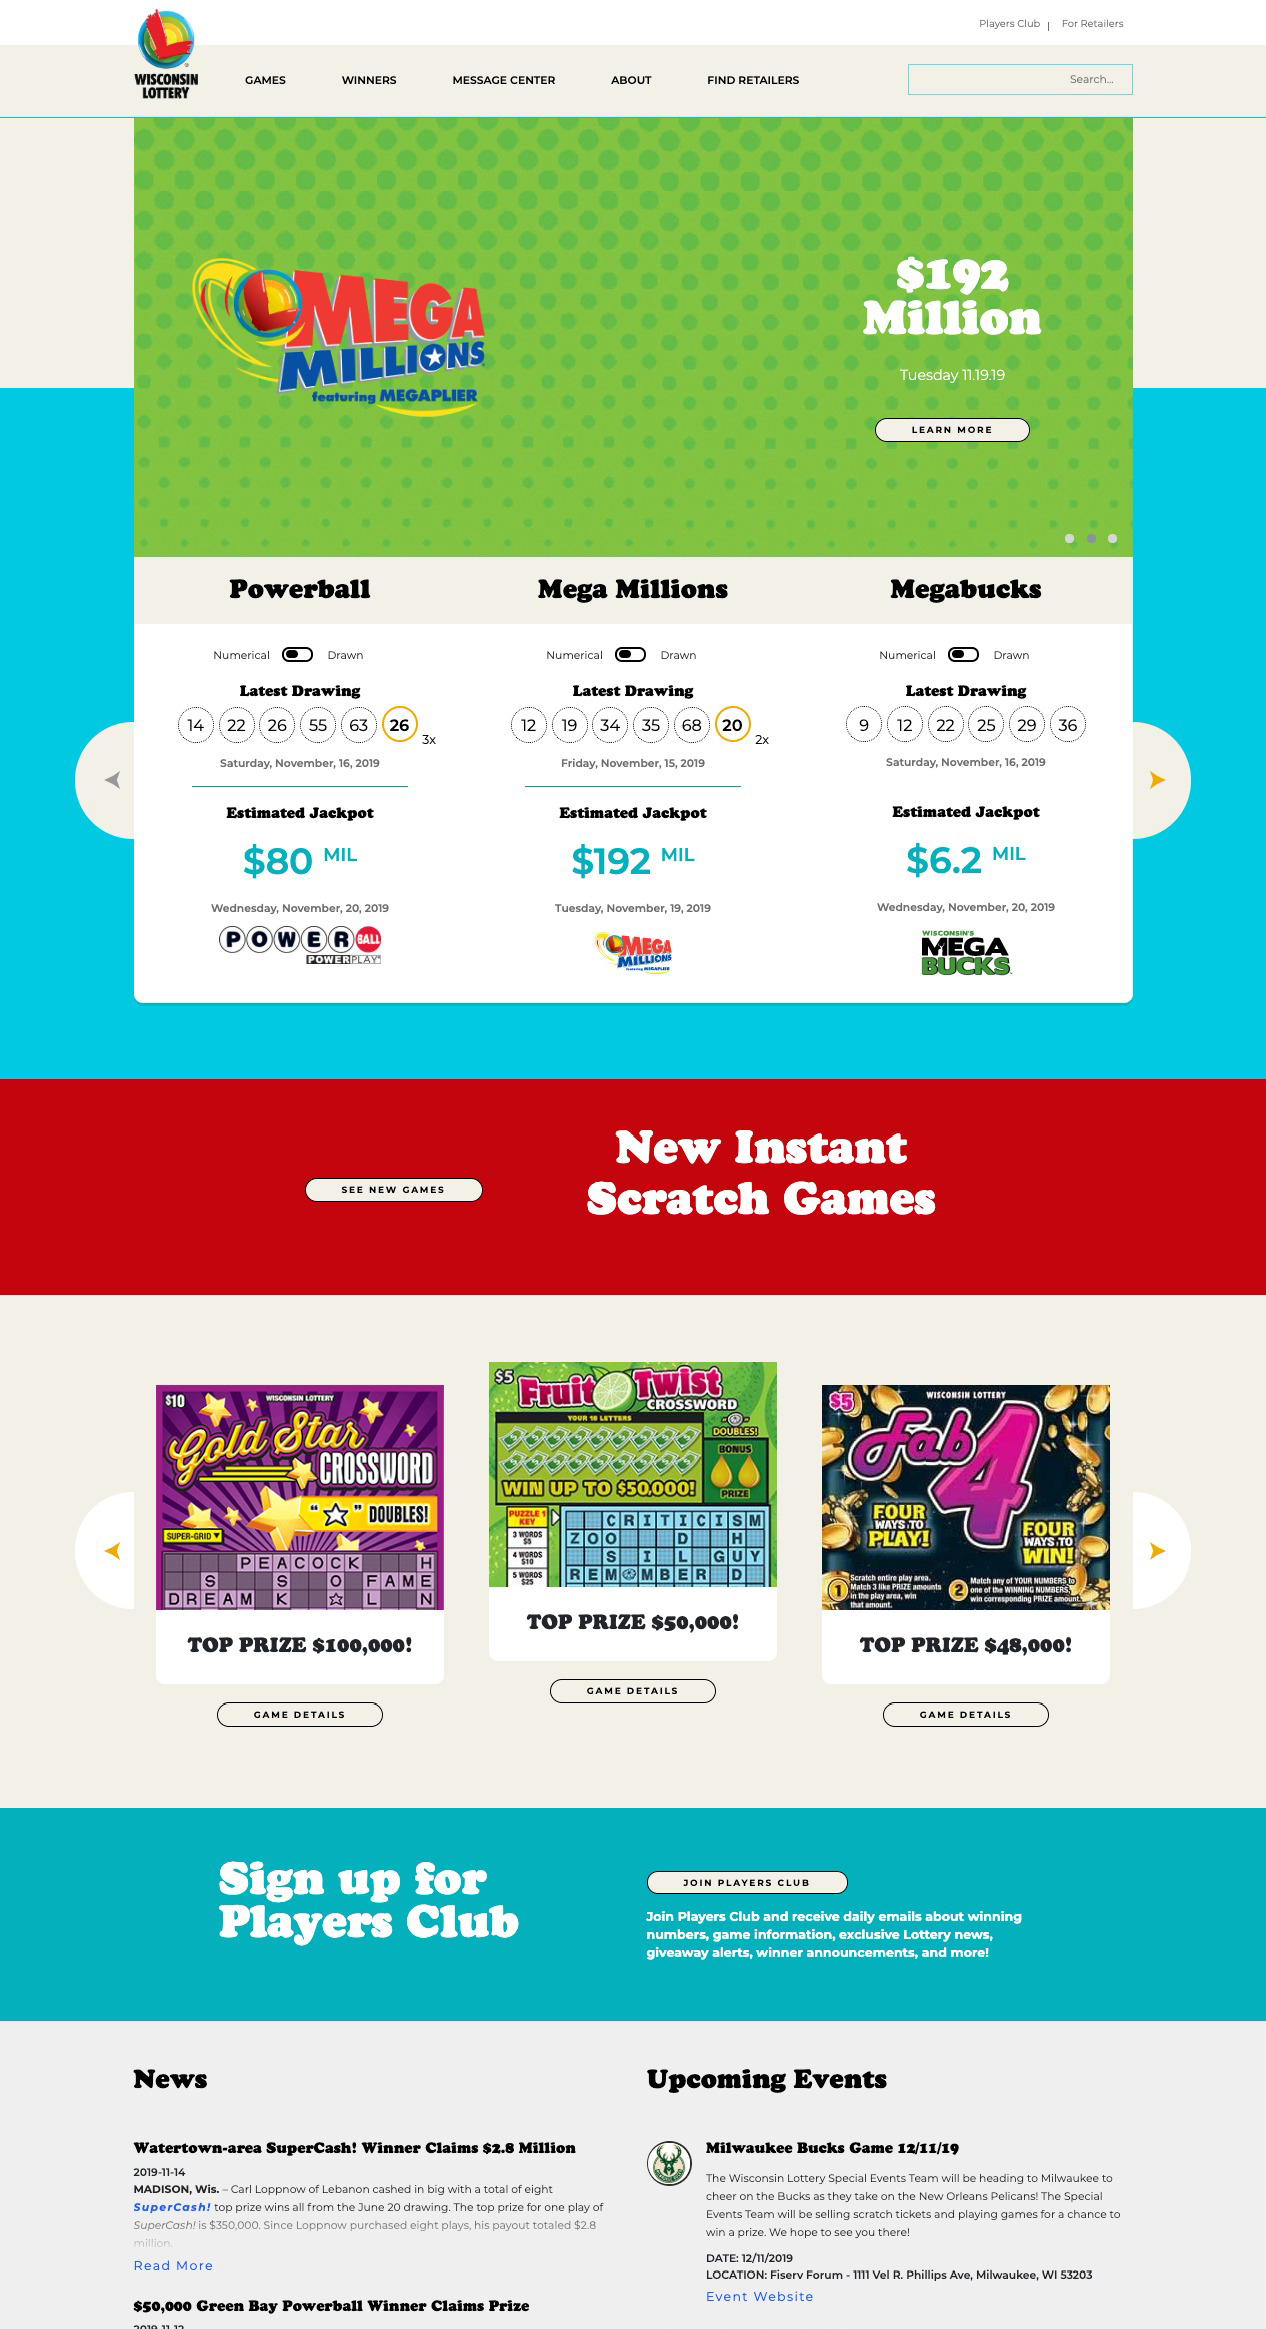 Wisconsin Lottery website home page